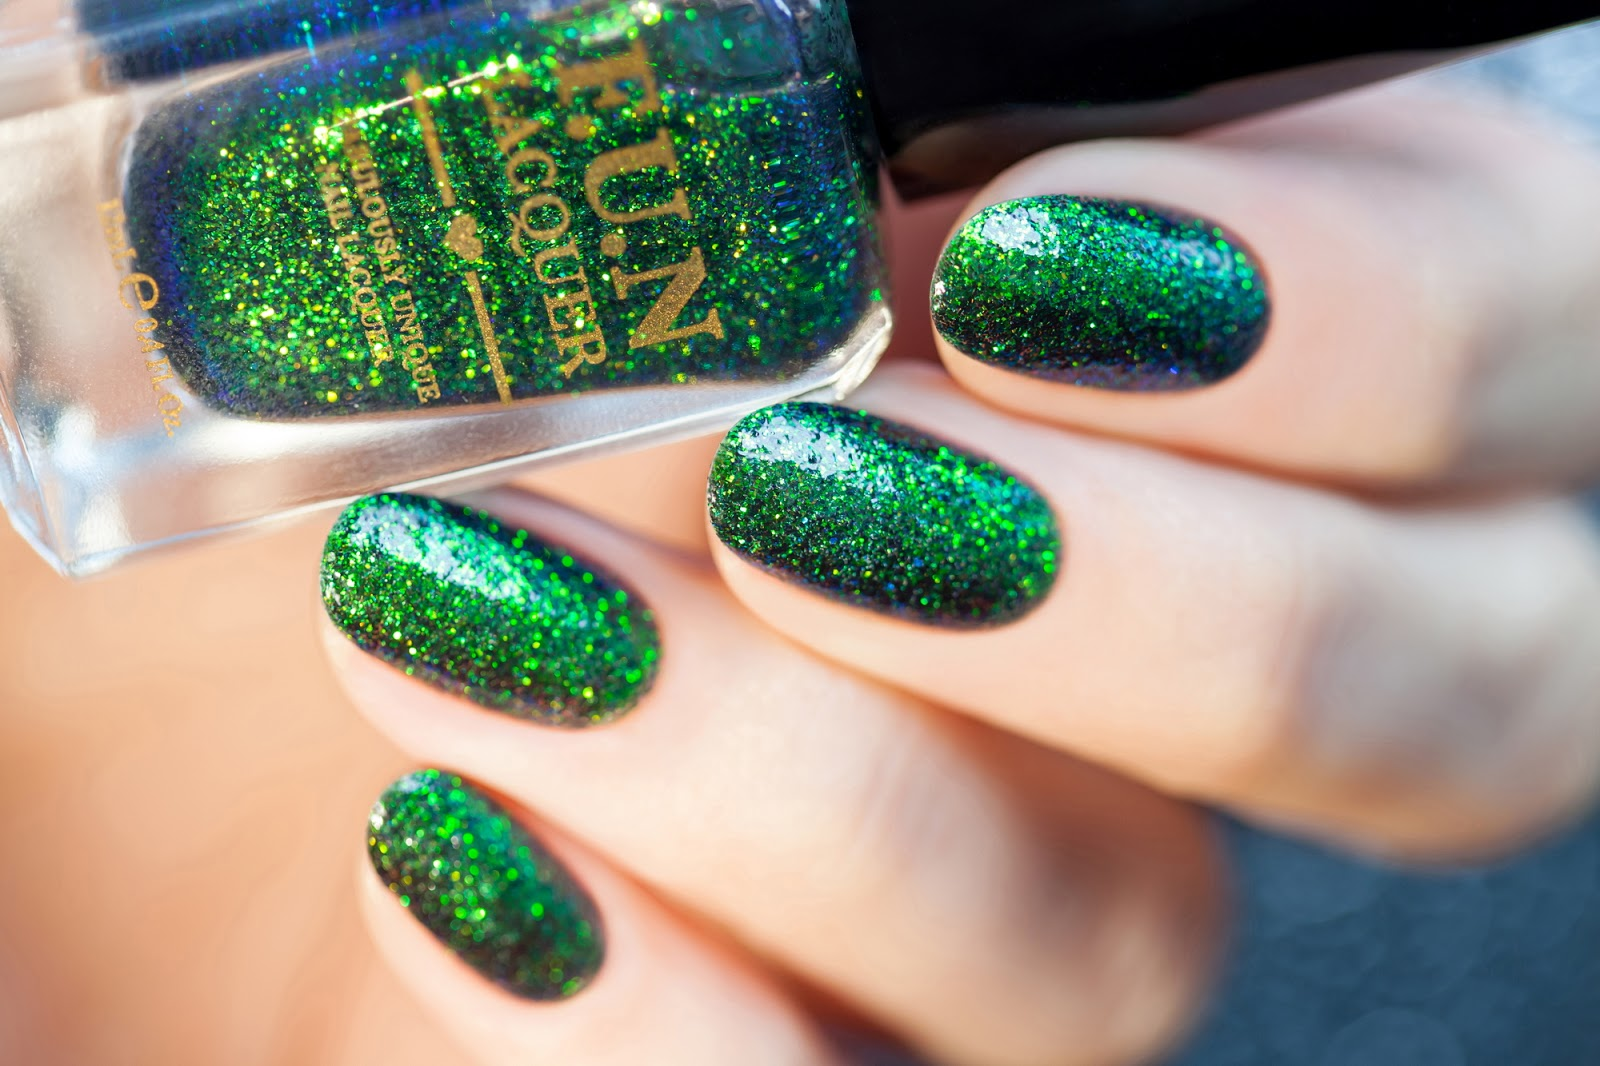 verushka\'s nails: F.U.N Lacquer Christmas 2017 Collection